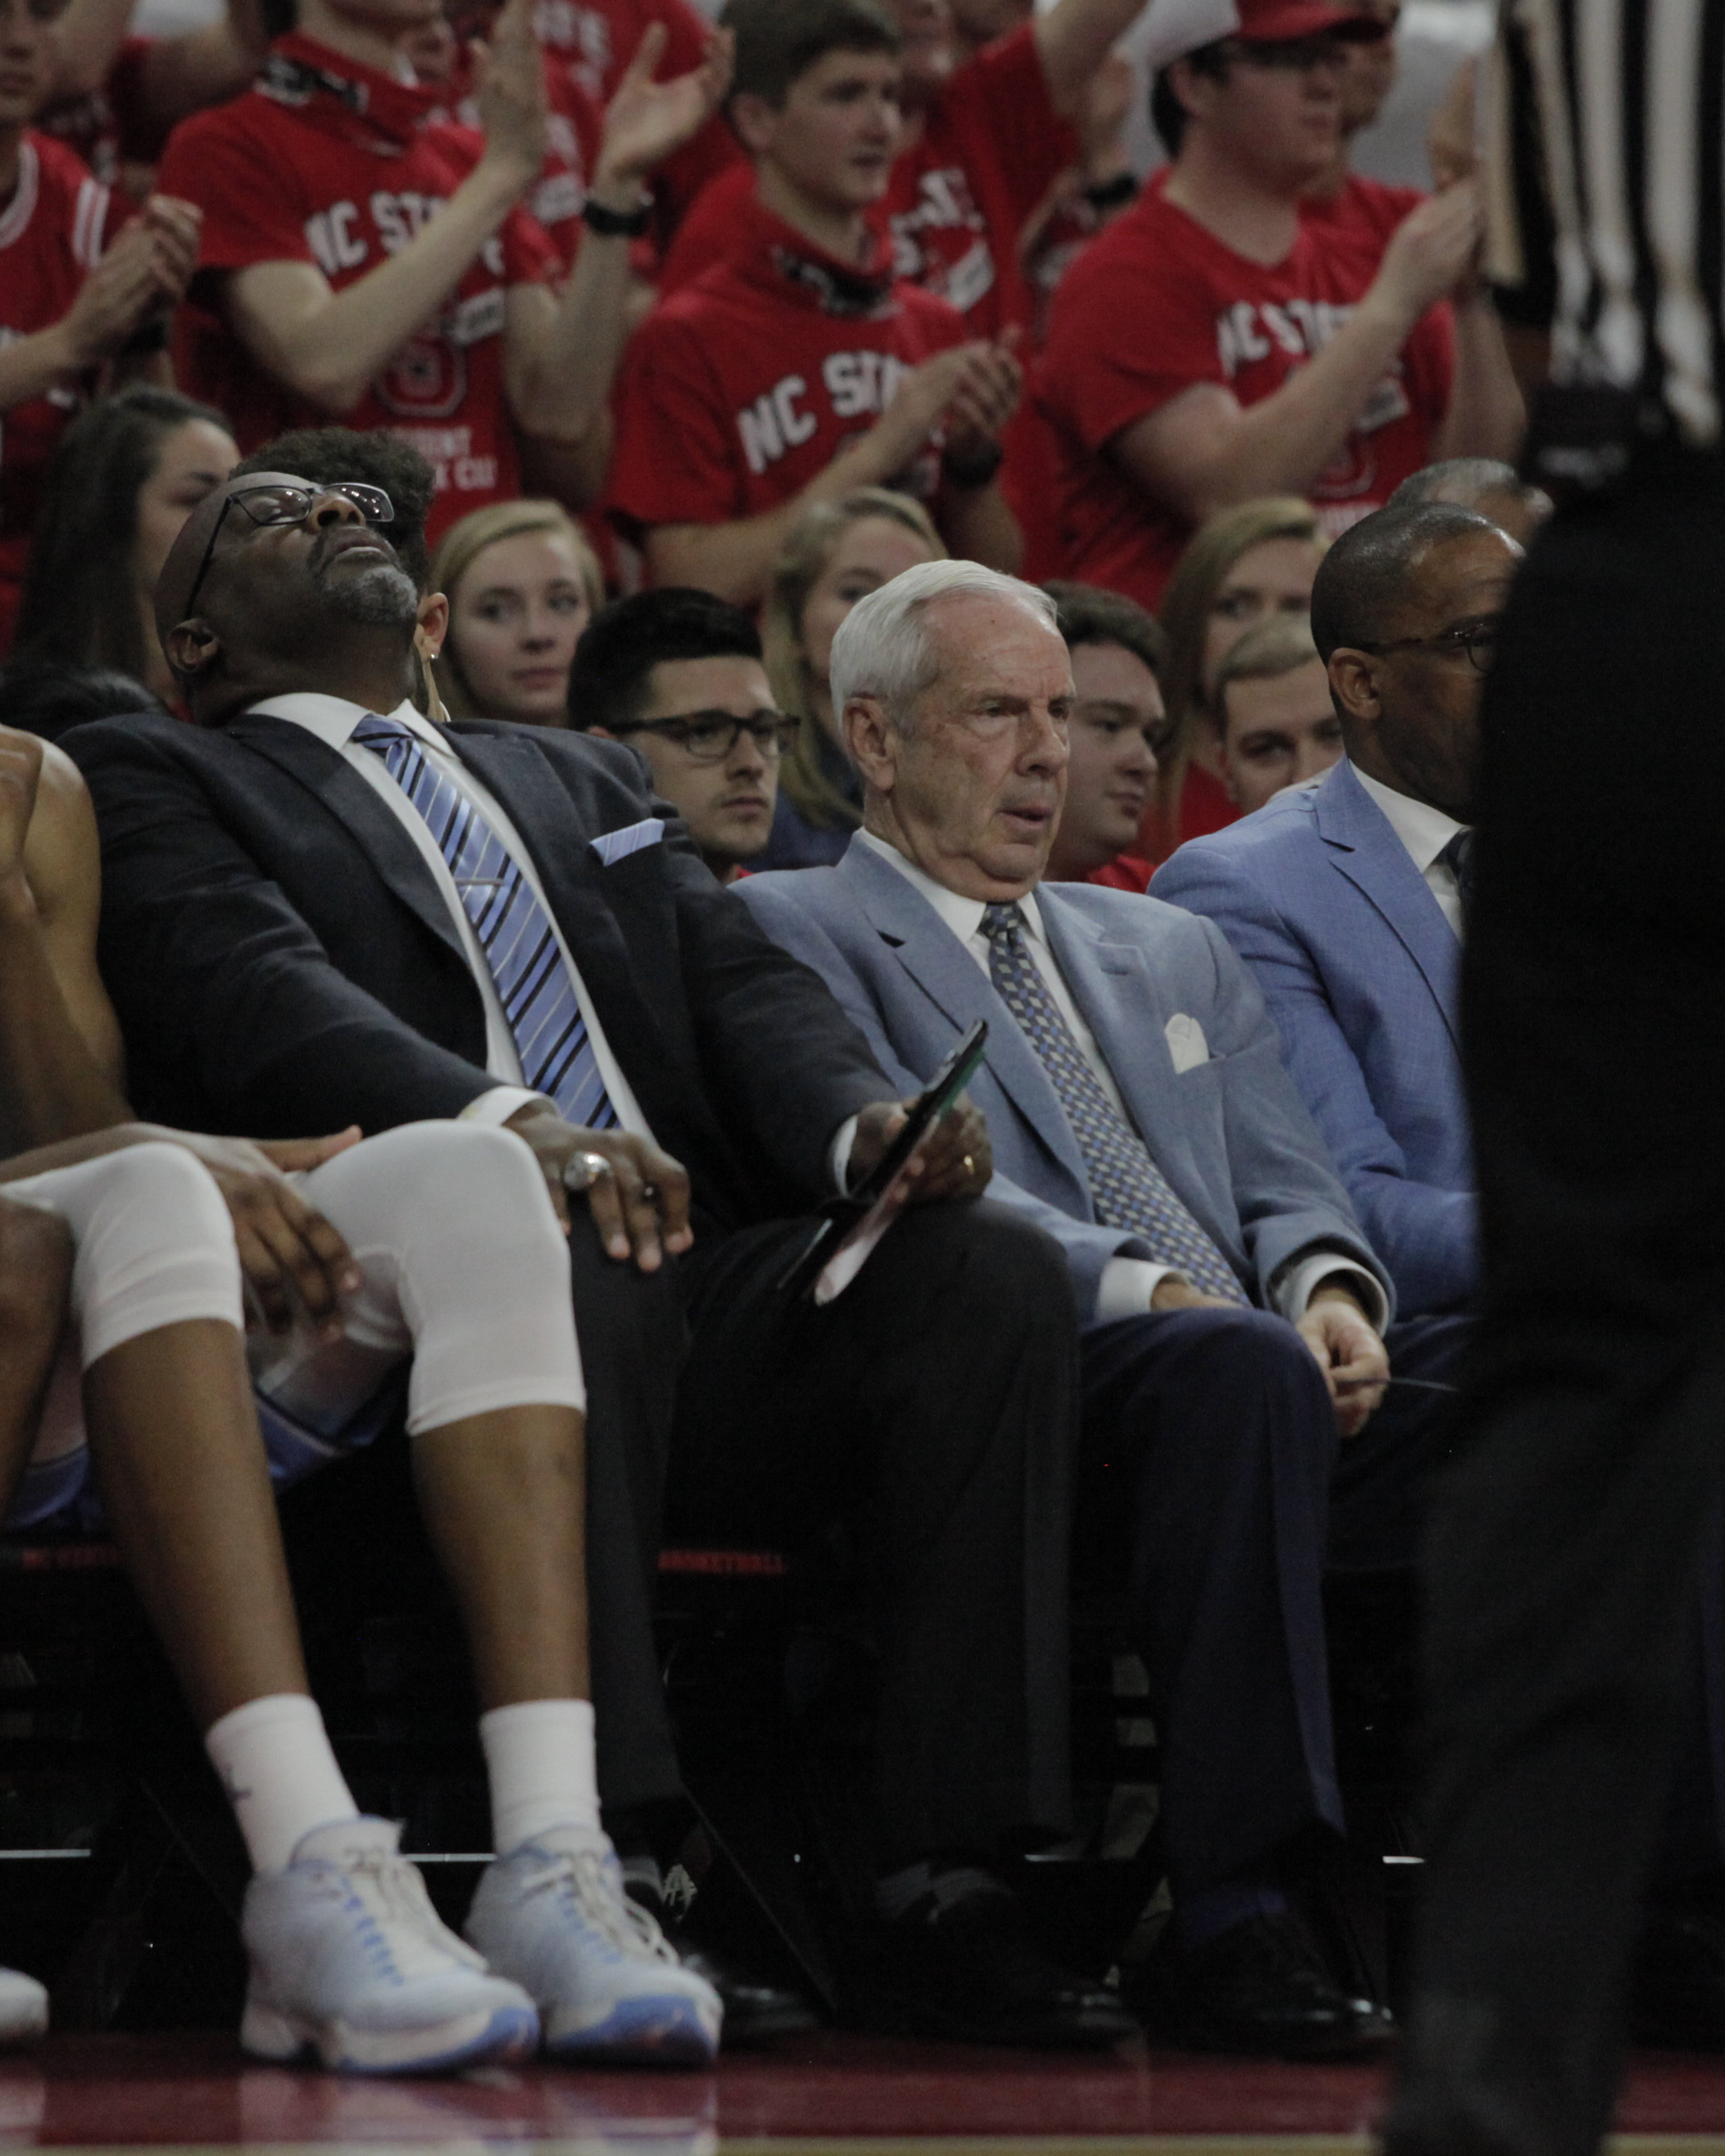 UNC head coach Roy Williams and his assistant coach Steve Robinson lean back in their seats in frustration during the UNC vs NC State game.